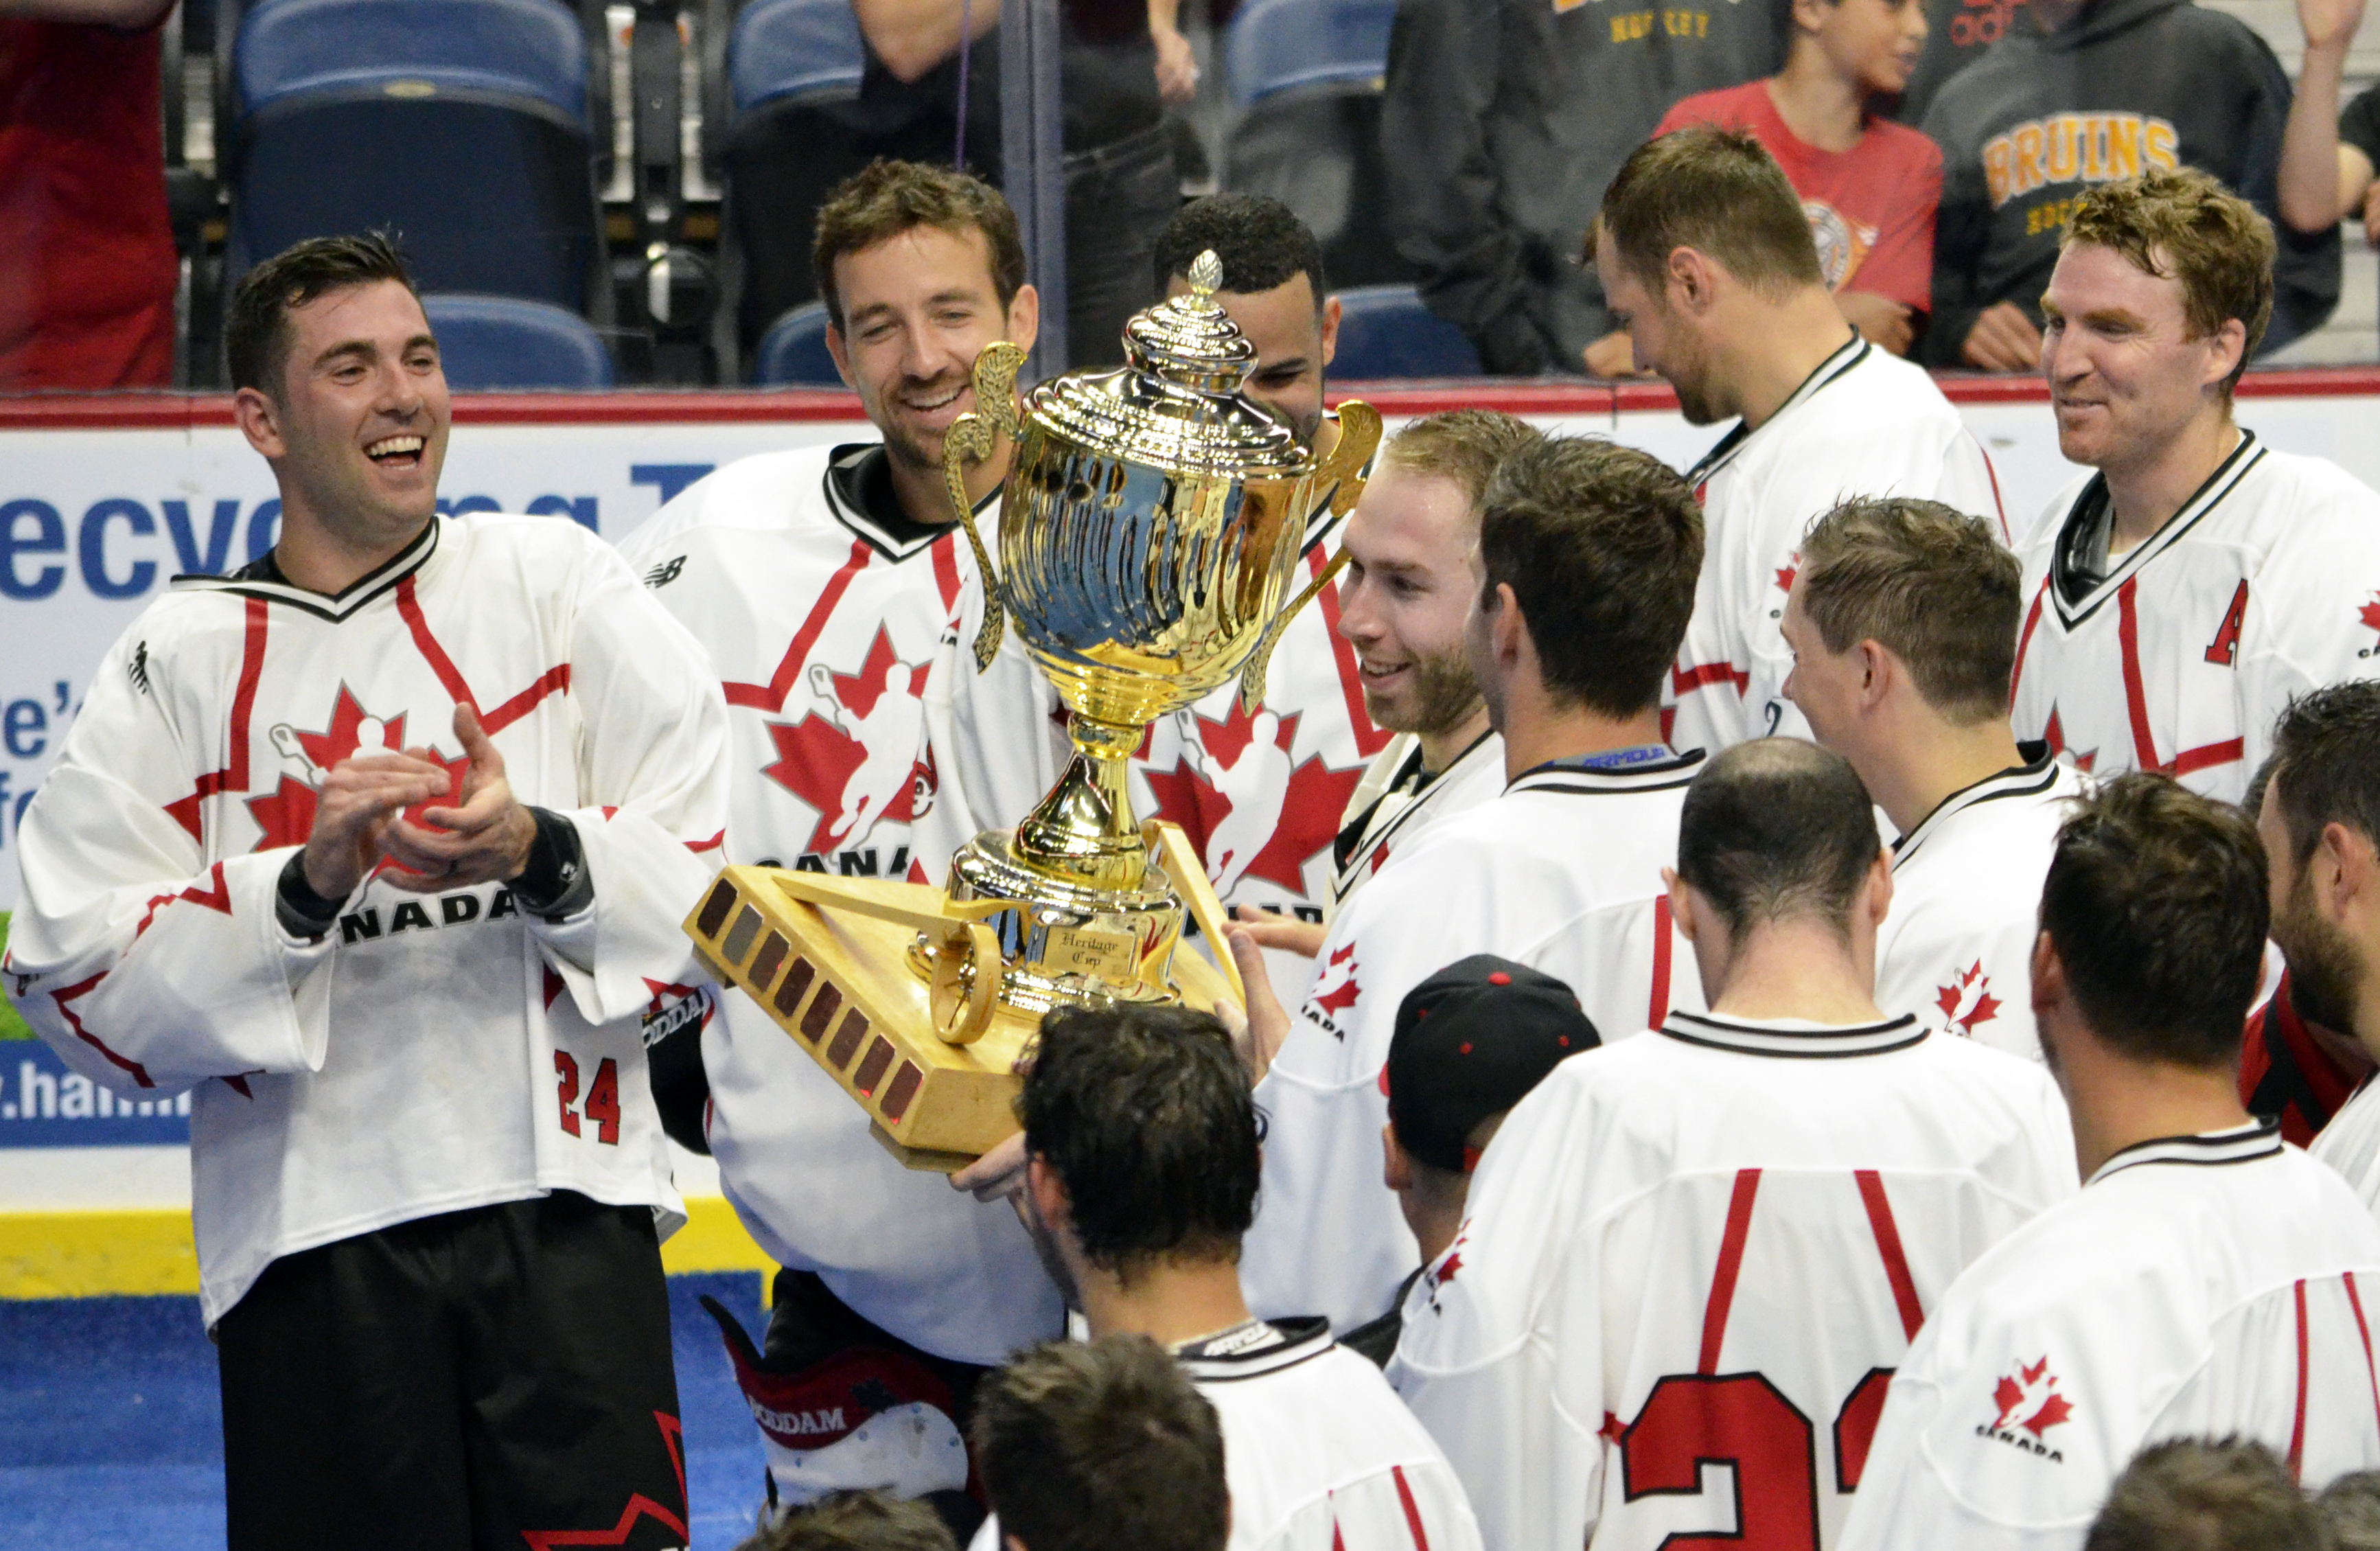 Ryan Dilks of Team Canada is all smiles after winning the 2017 Heritage Cup in Hamilton, Ont. (Photo credit: Anna Taylor)